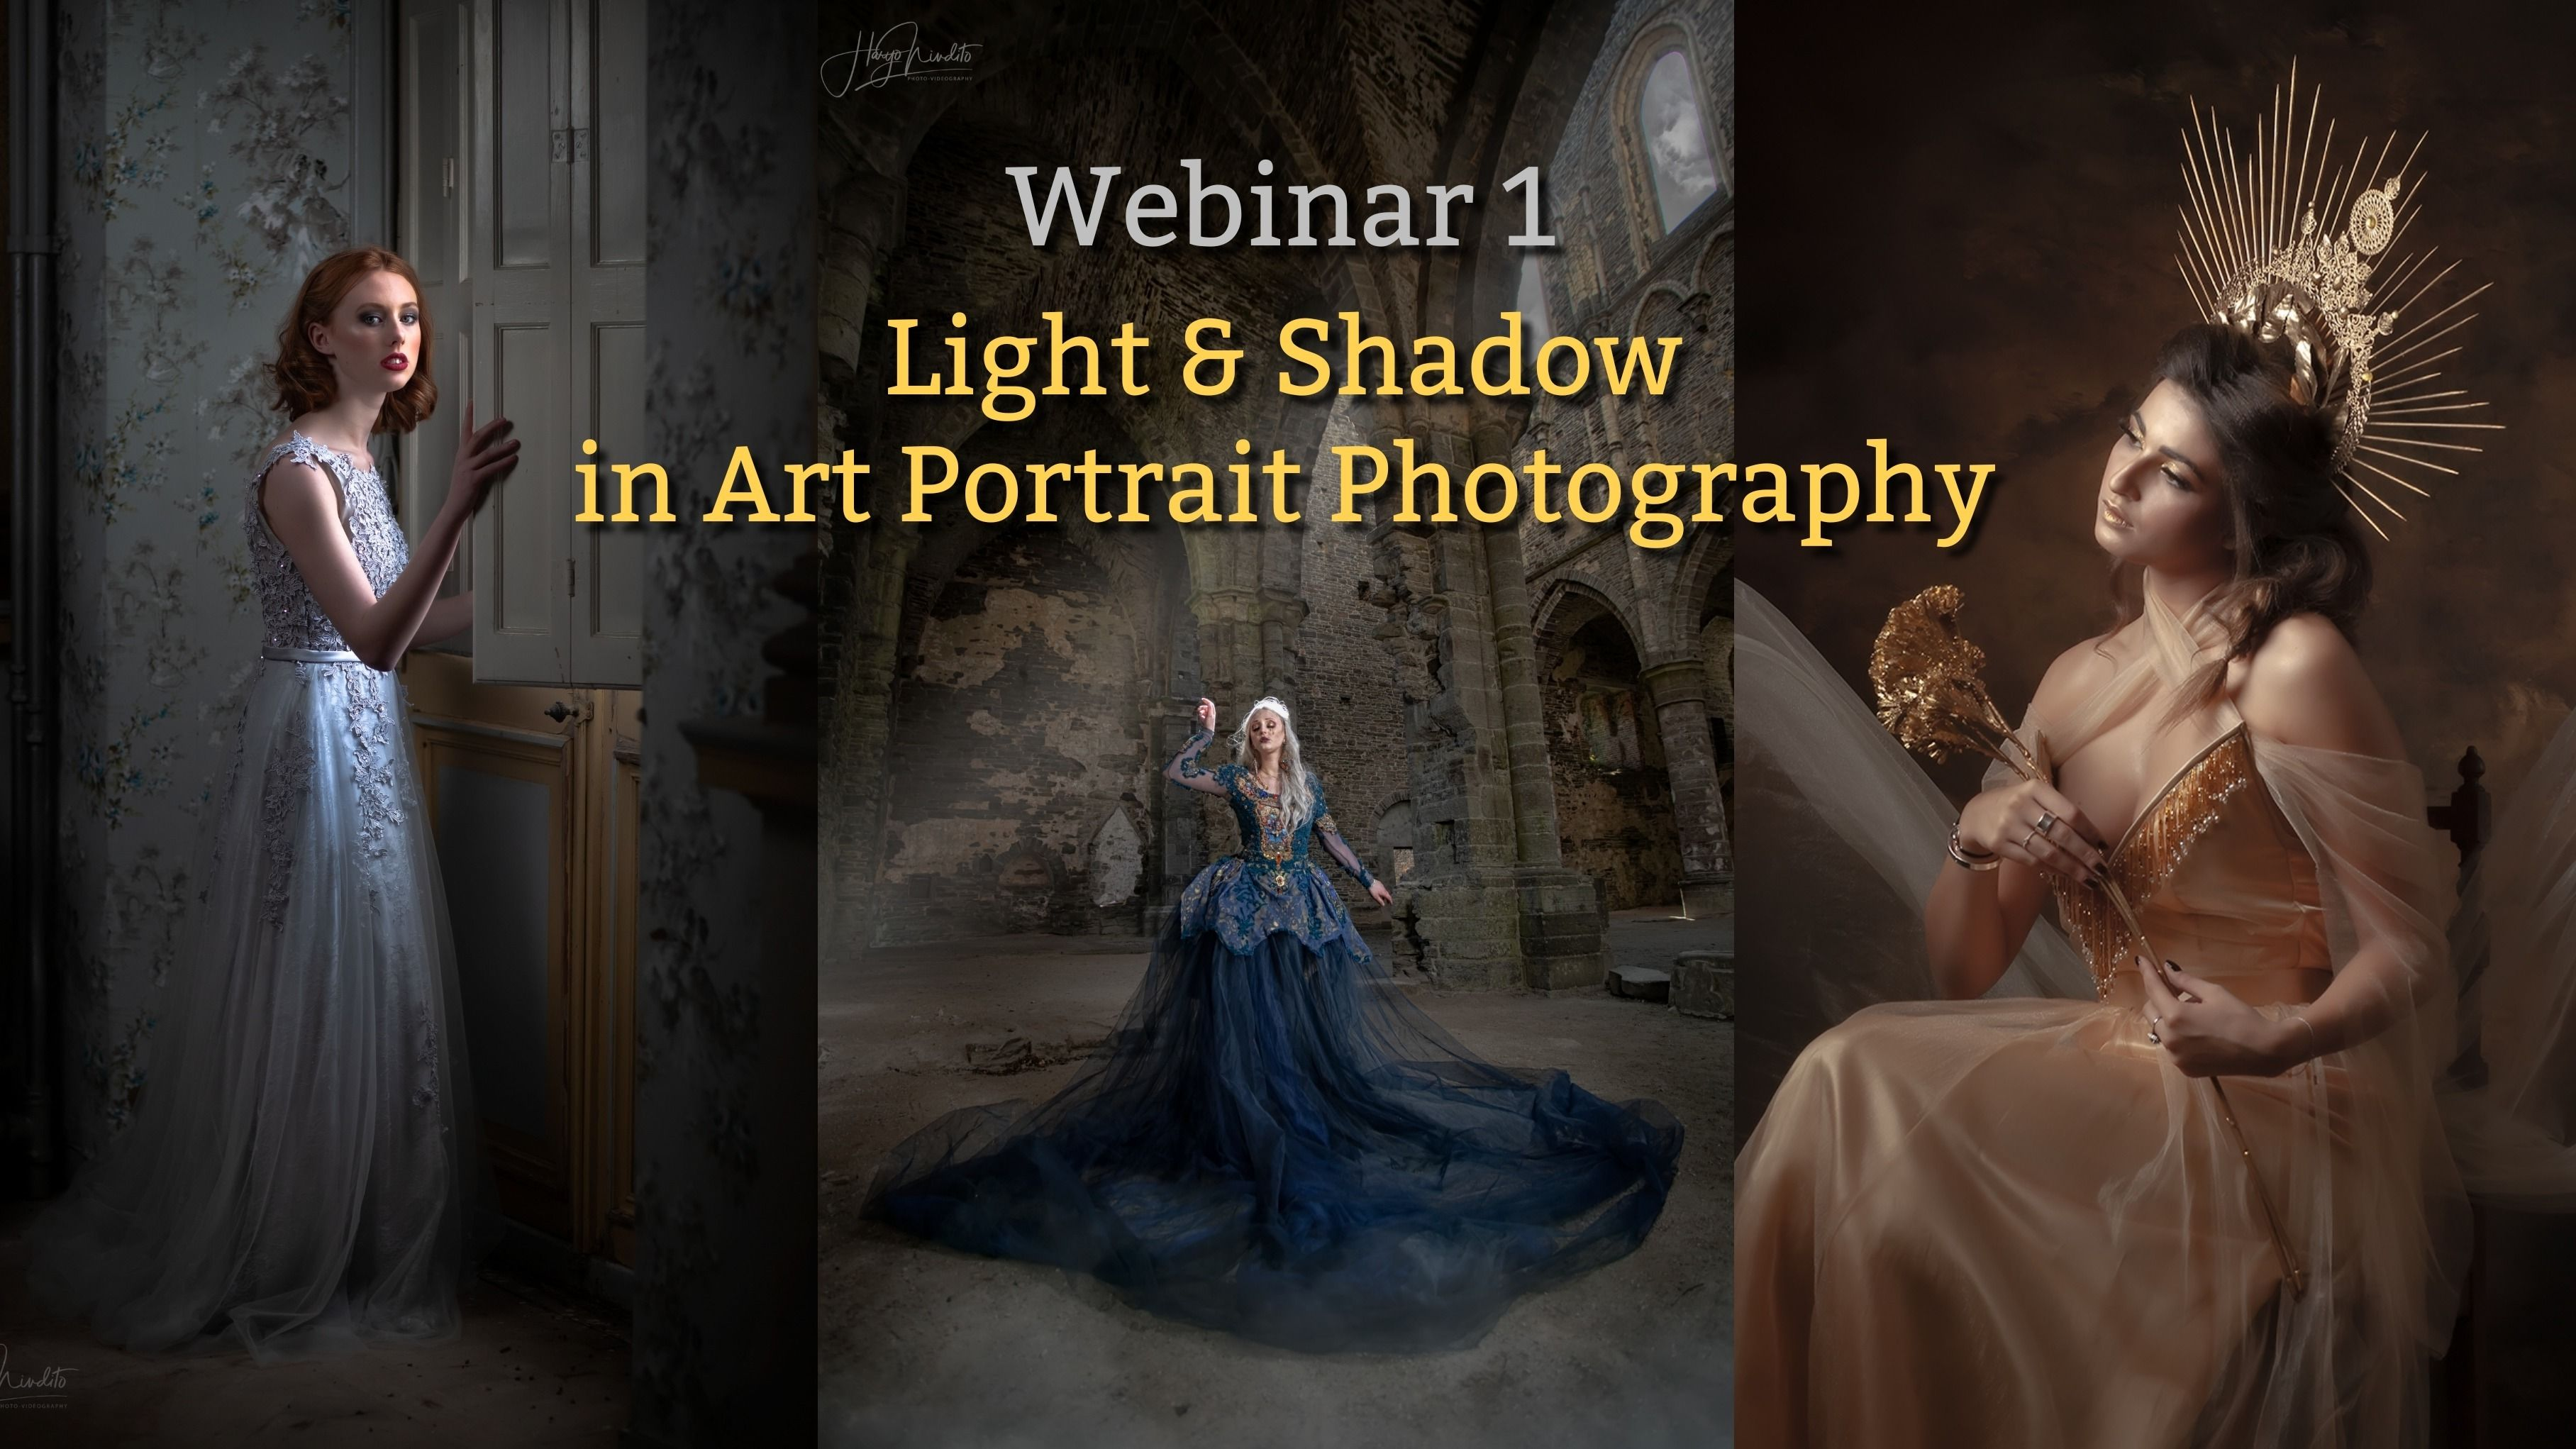 Webinar 1: Light and Shadow in Art Portrait Photography